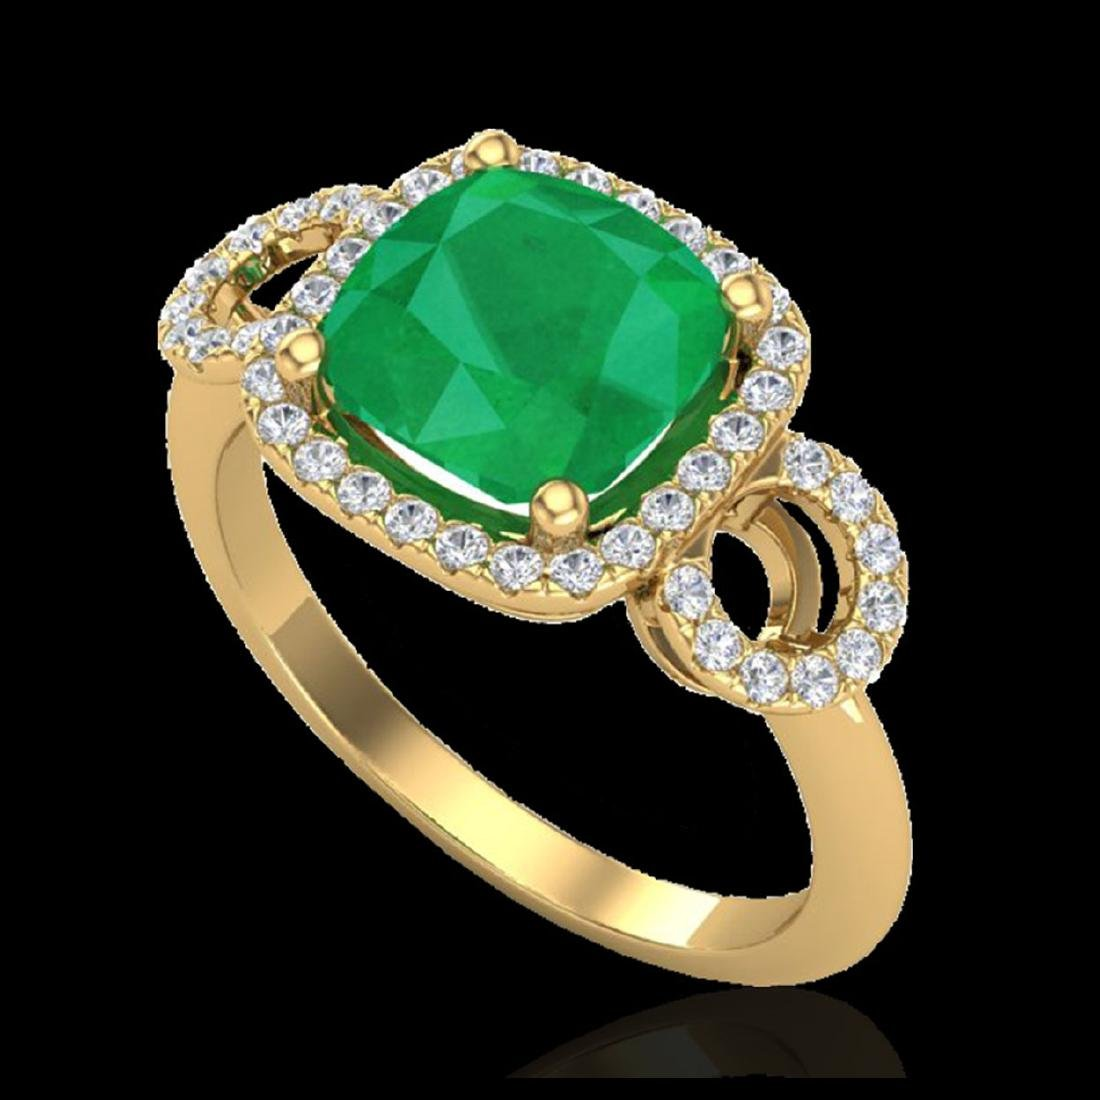 3.15 CTW Emerald & Micro VS/SI Diamond Ring 18K Yellow - 2